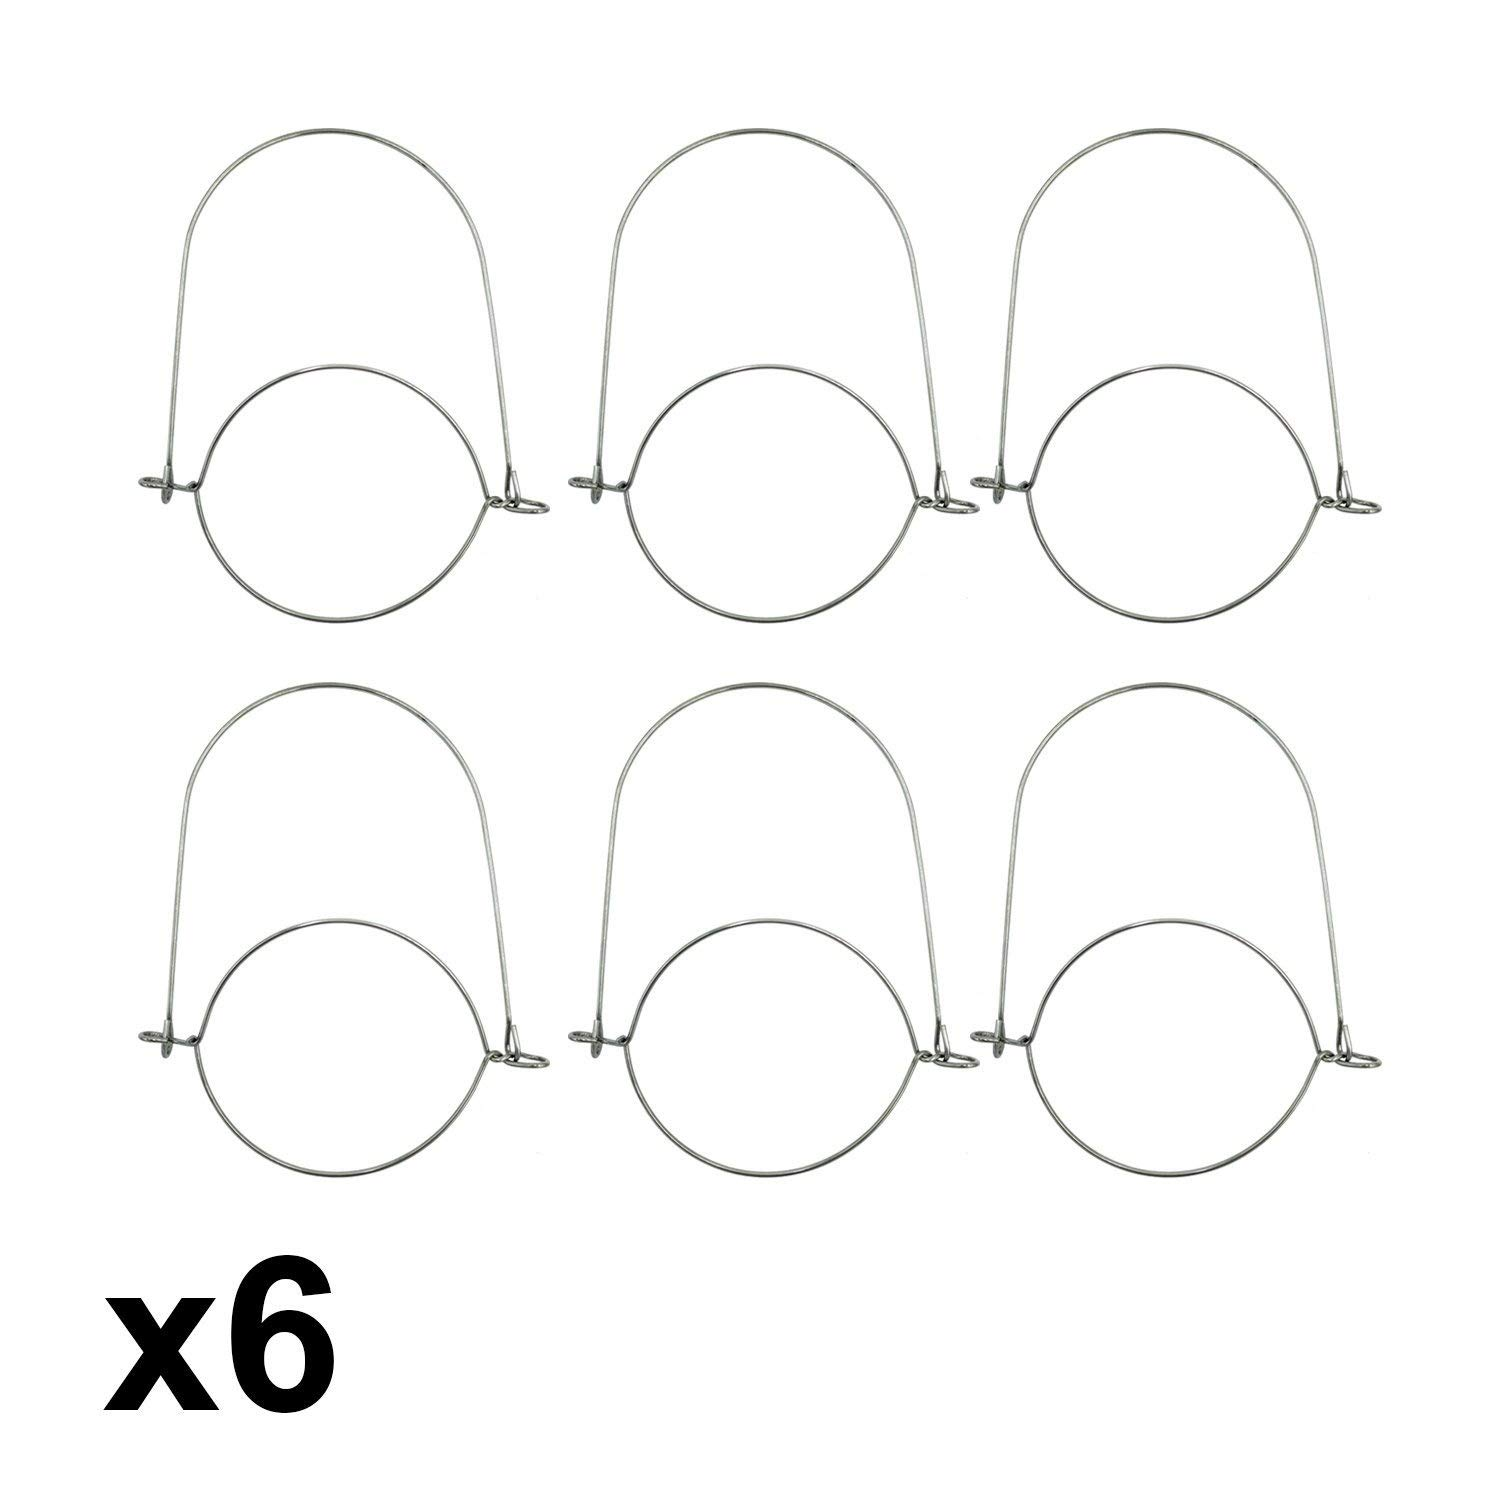 6 Pack, Regular Mouth Ball Stainless Steel Wire Handles for Mason Canning Jars